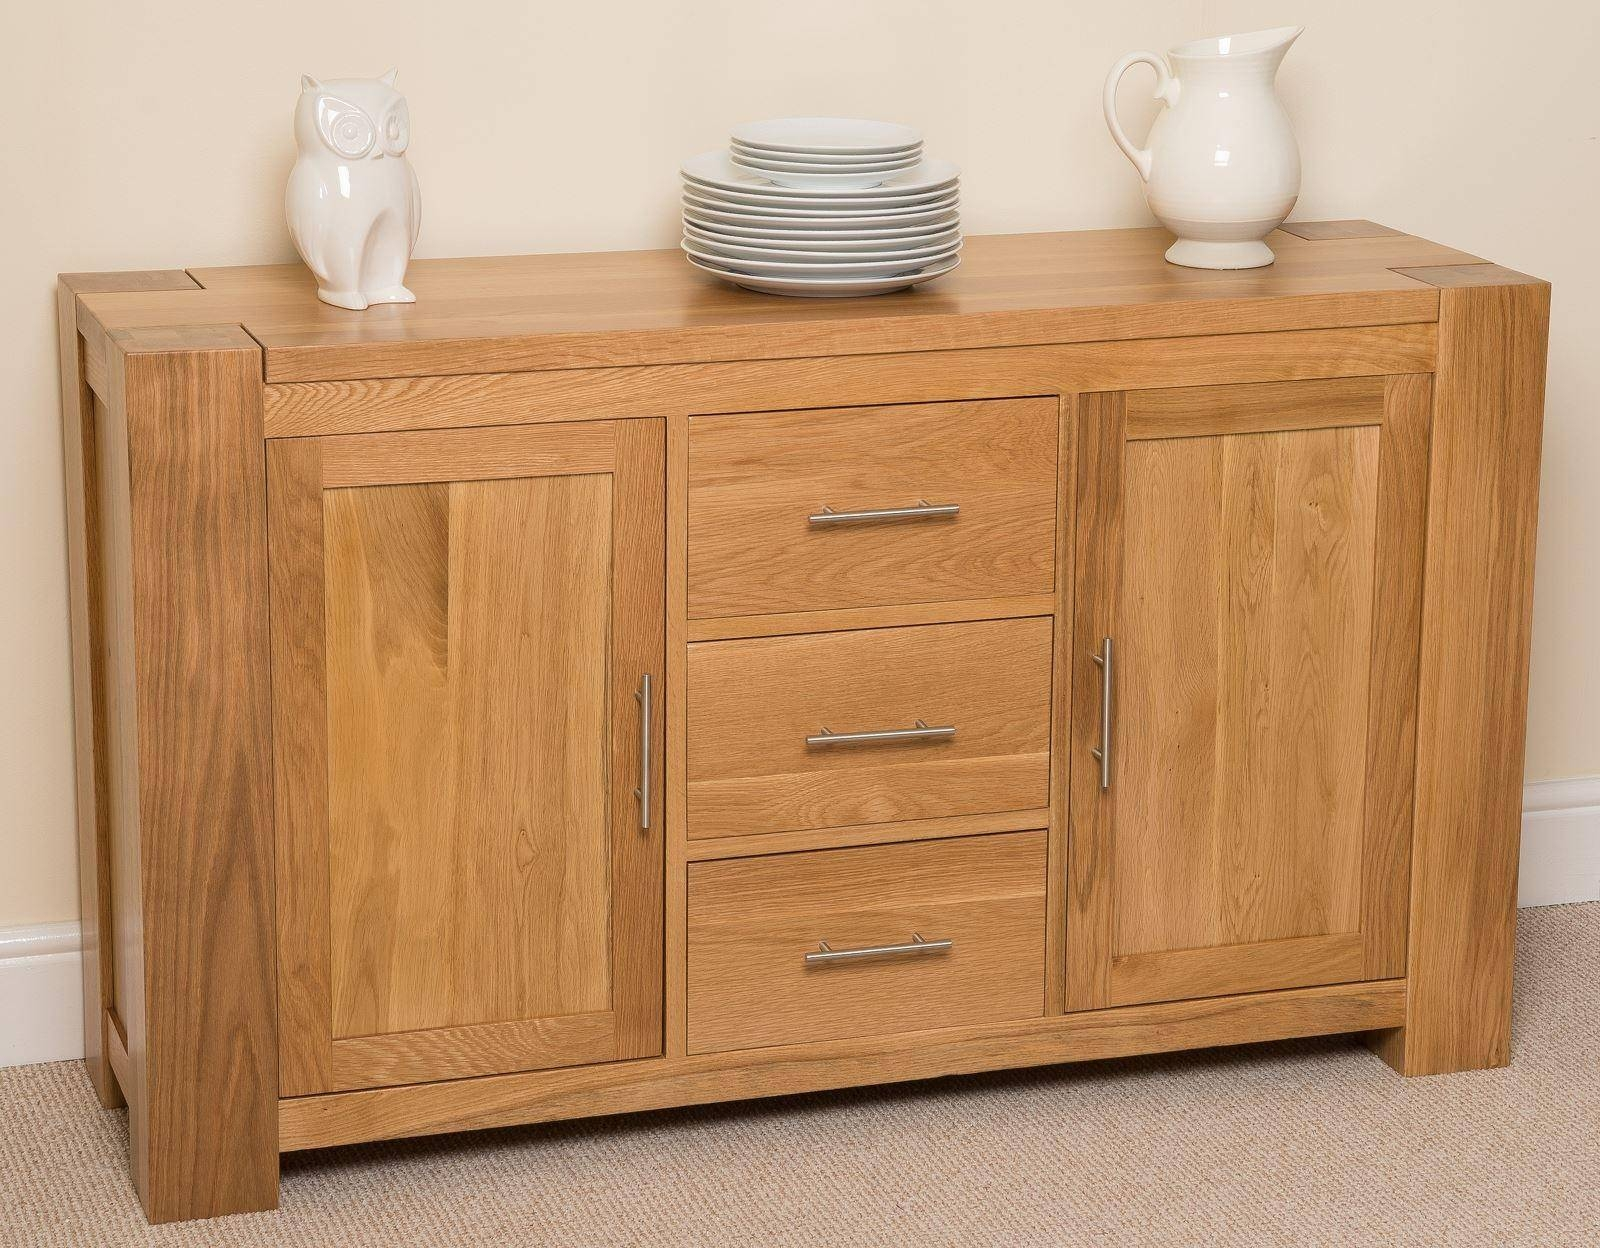 Kuba Solid Large Oak Sideboard | Free Uk Delivery In Solid Oak Sideboards (View 8 of 15)